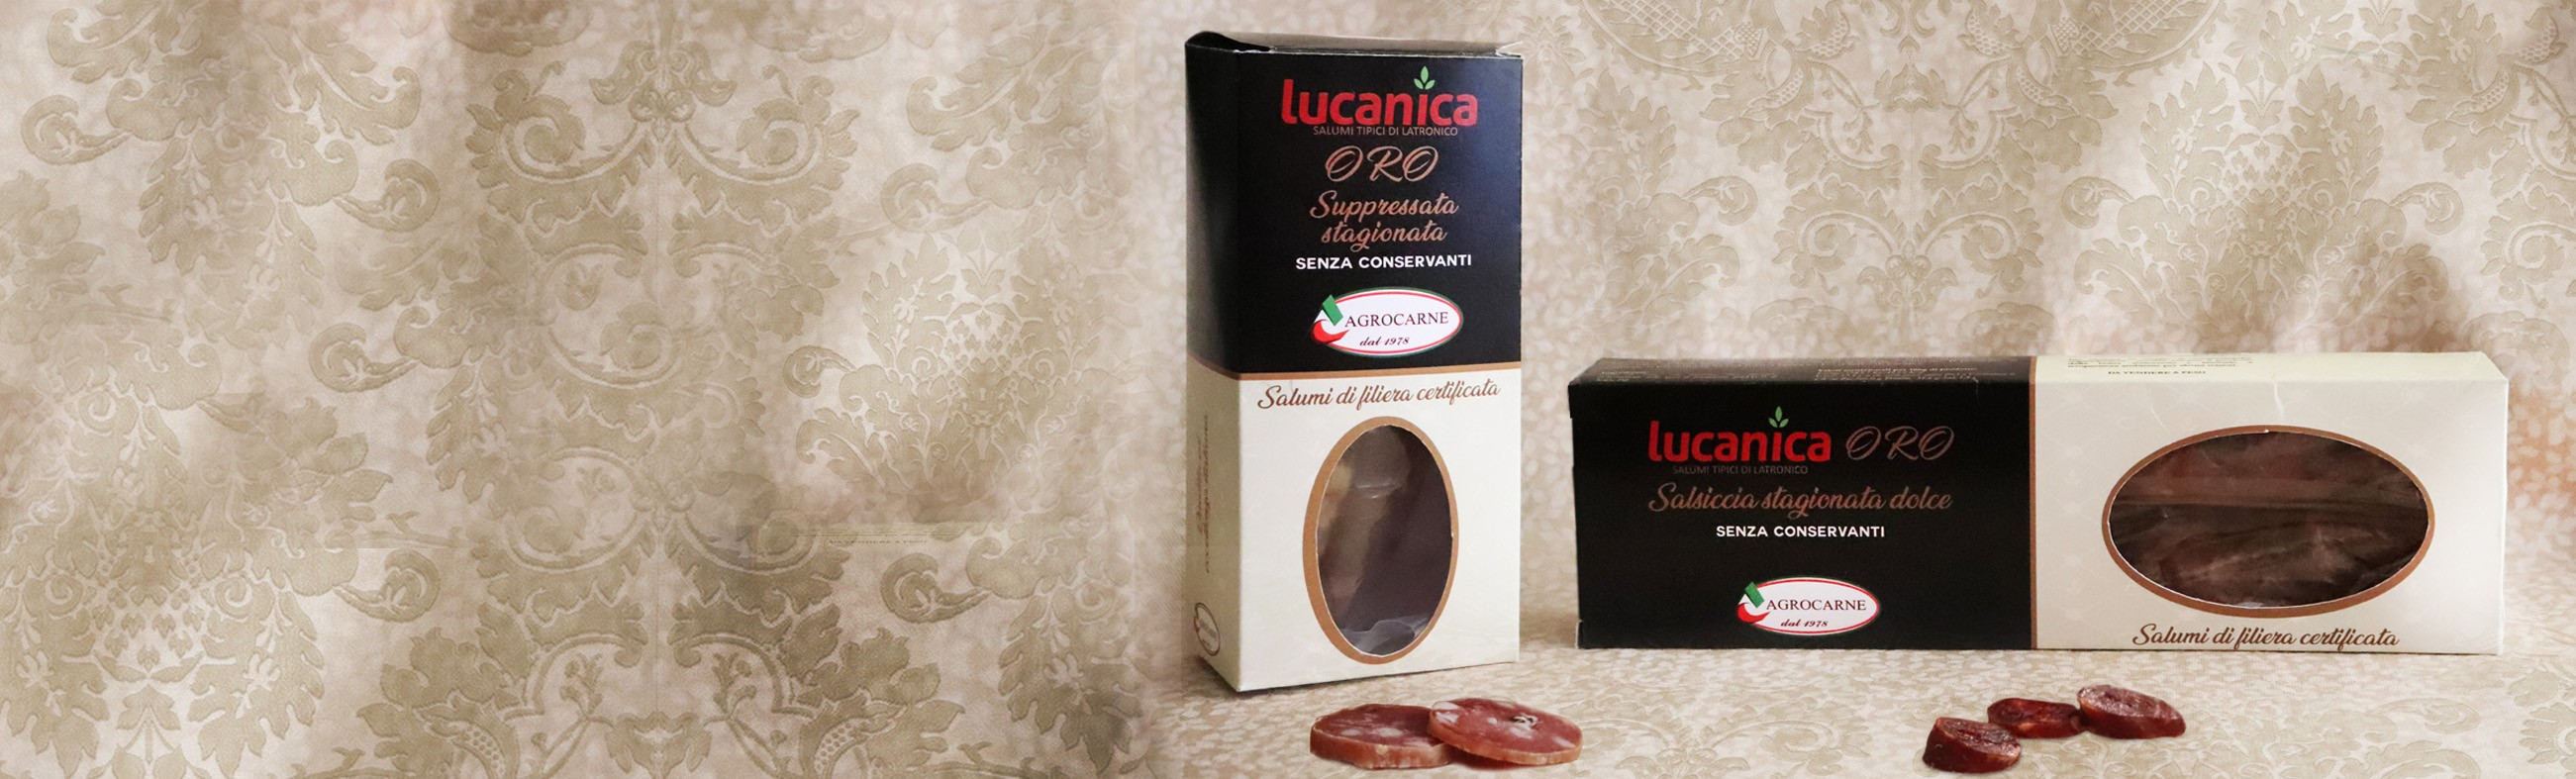 LUCANICA GOLD LINE WITHOUT PRESERVATIVES